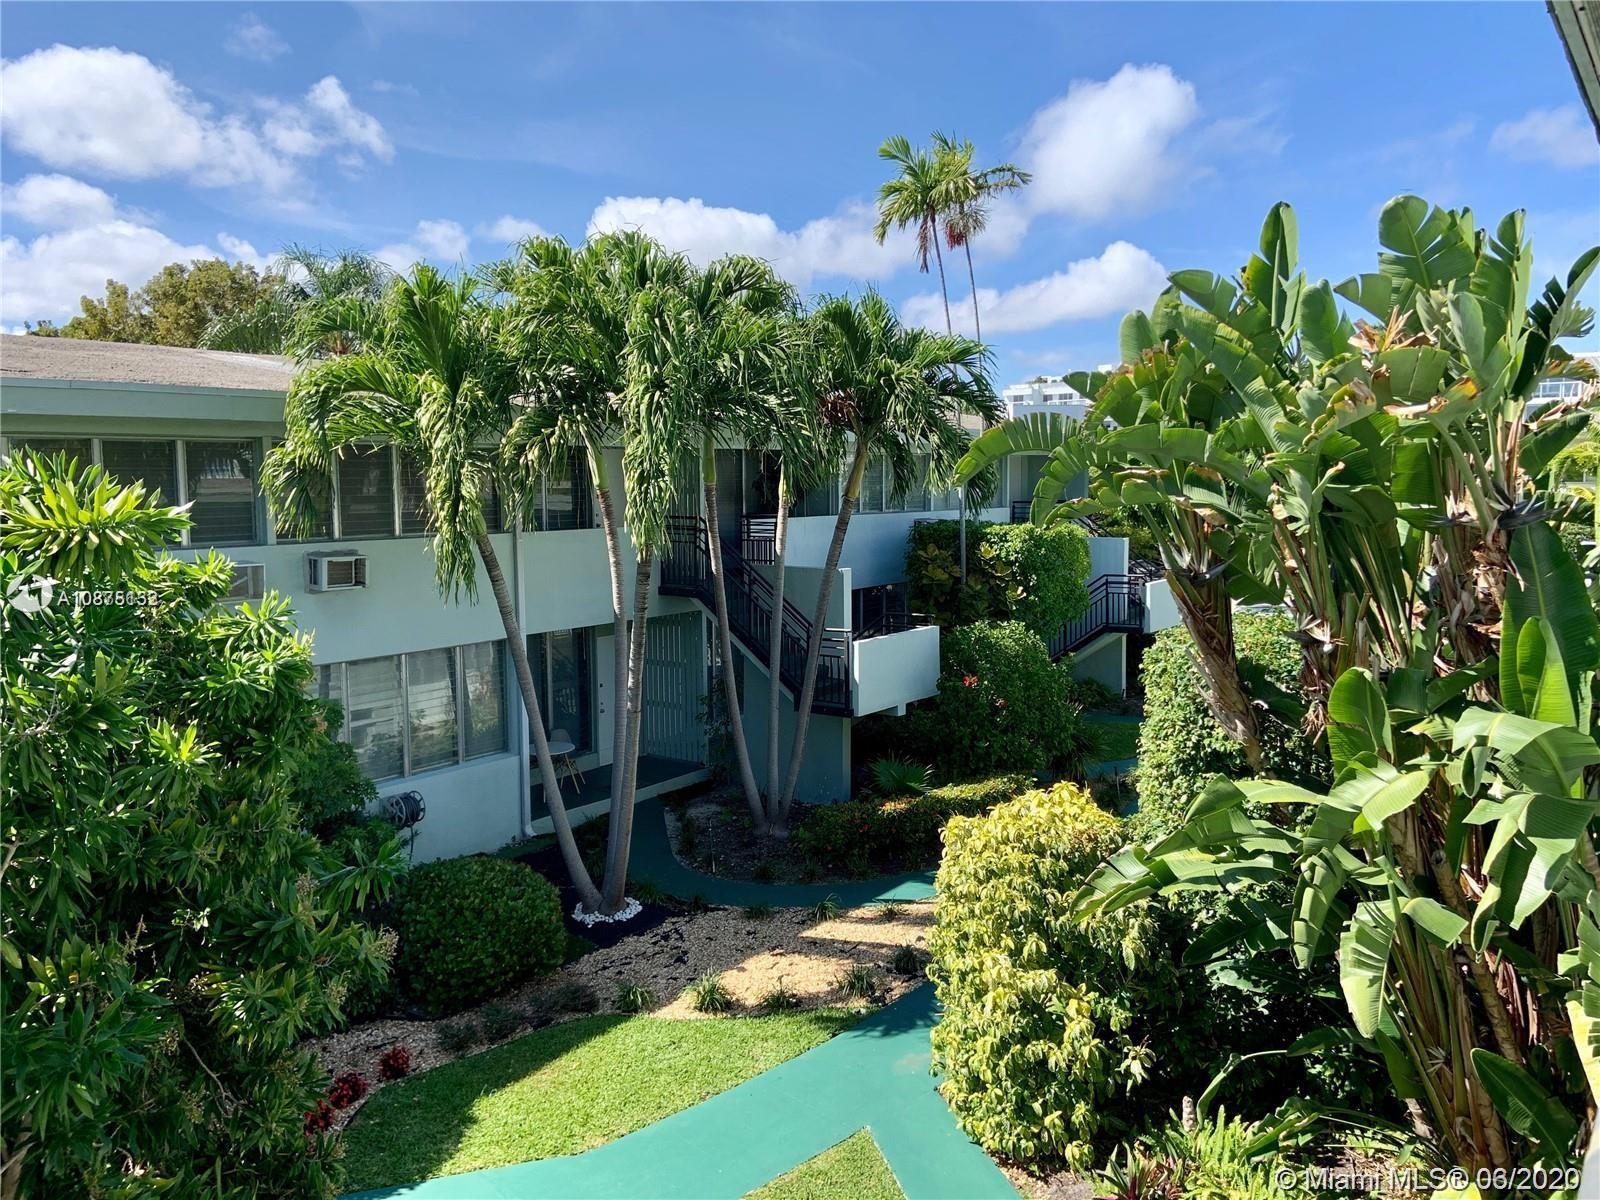 Excellent location in Bay Harbor Islands. One bedroom, one bath. Second floor with beautiful balcony facing the garden, one uncovered parking space, Corner unit with lots of windows and natural light. no pets -. Walking distance to the ocean, places of worship and supermarkets. Near to Surfside great restaurants. Very safe area. Great investment property.